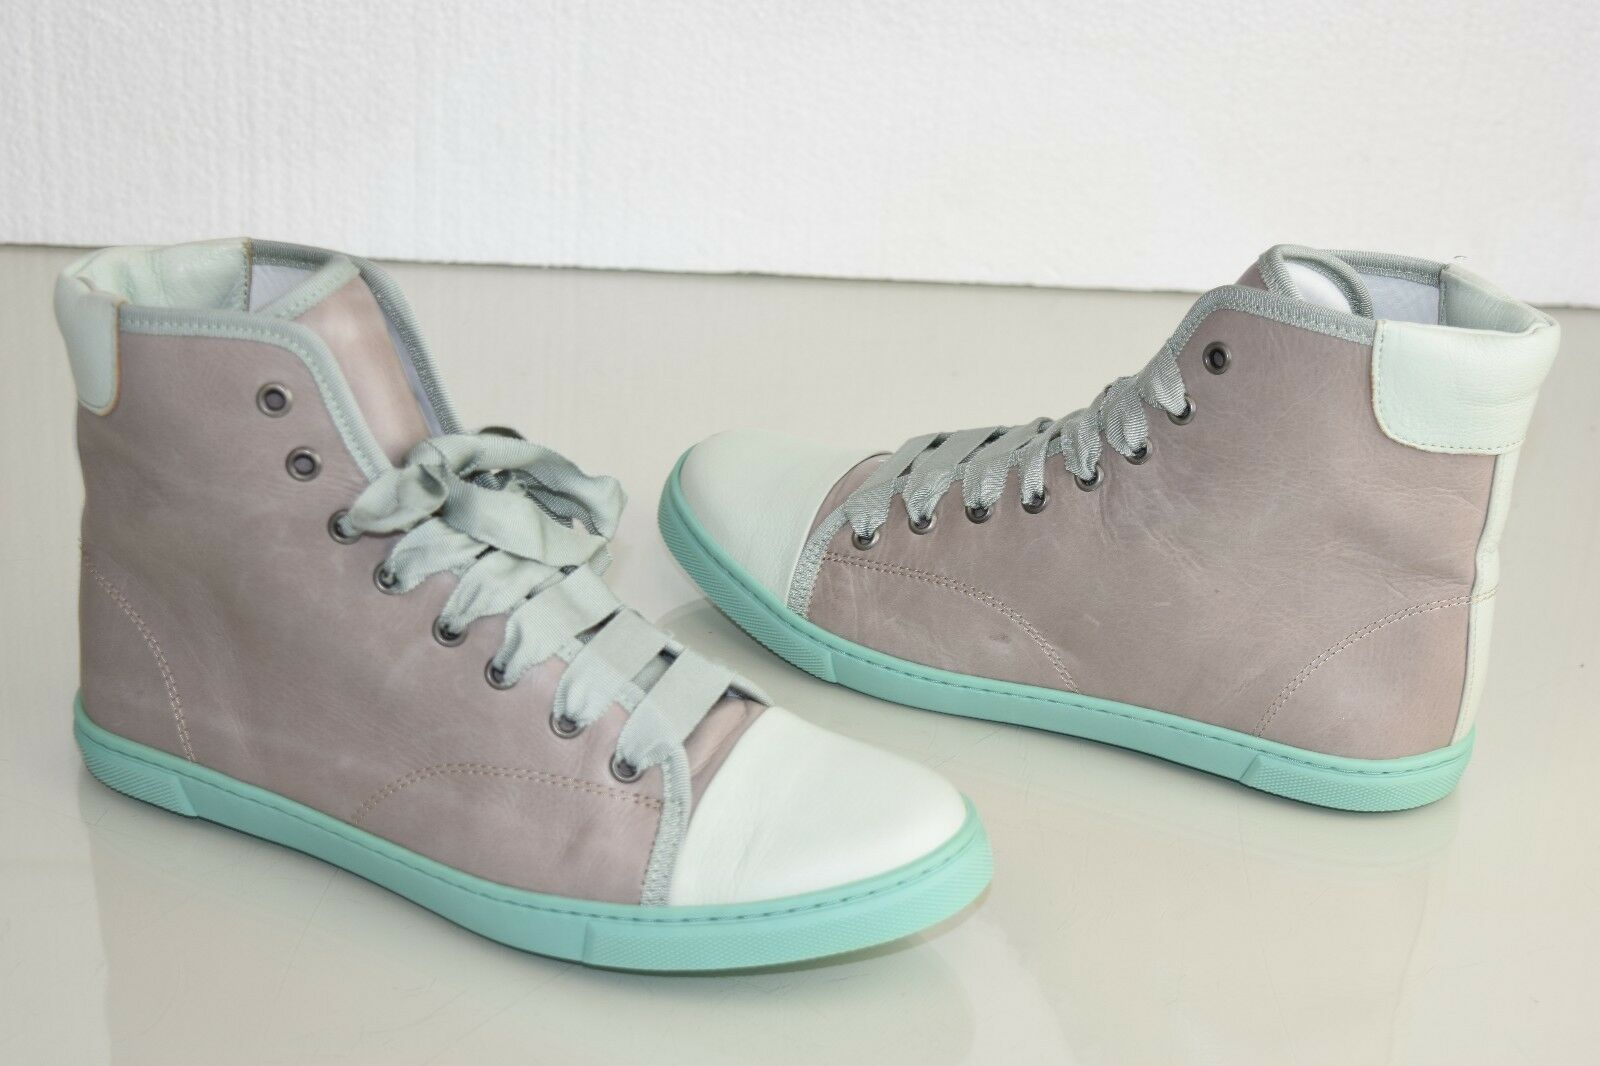 695 NEW Lanvin Basket Haute High Top Sneakers Light Gray Mint Lace Up Shoes 40